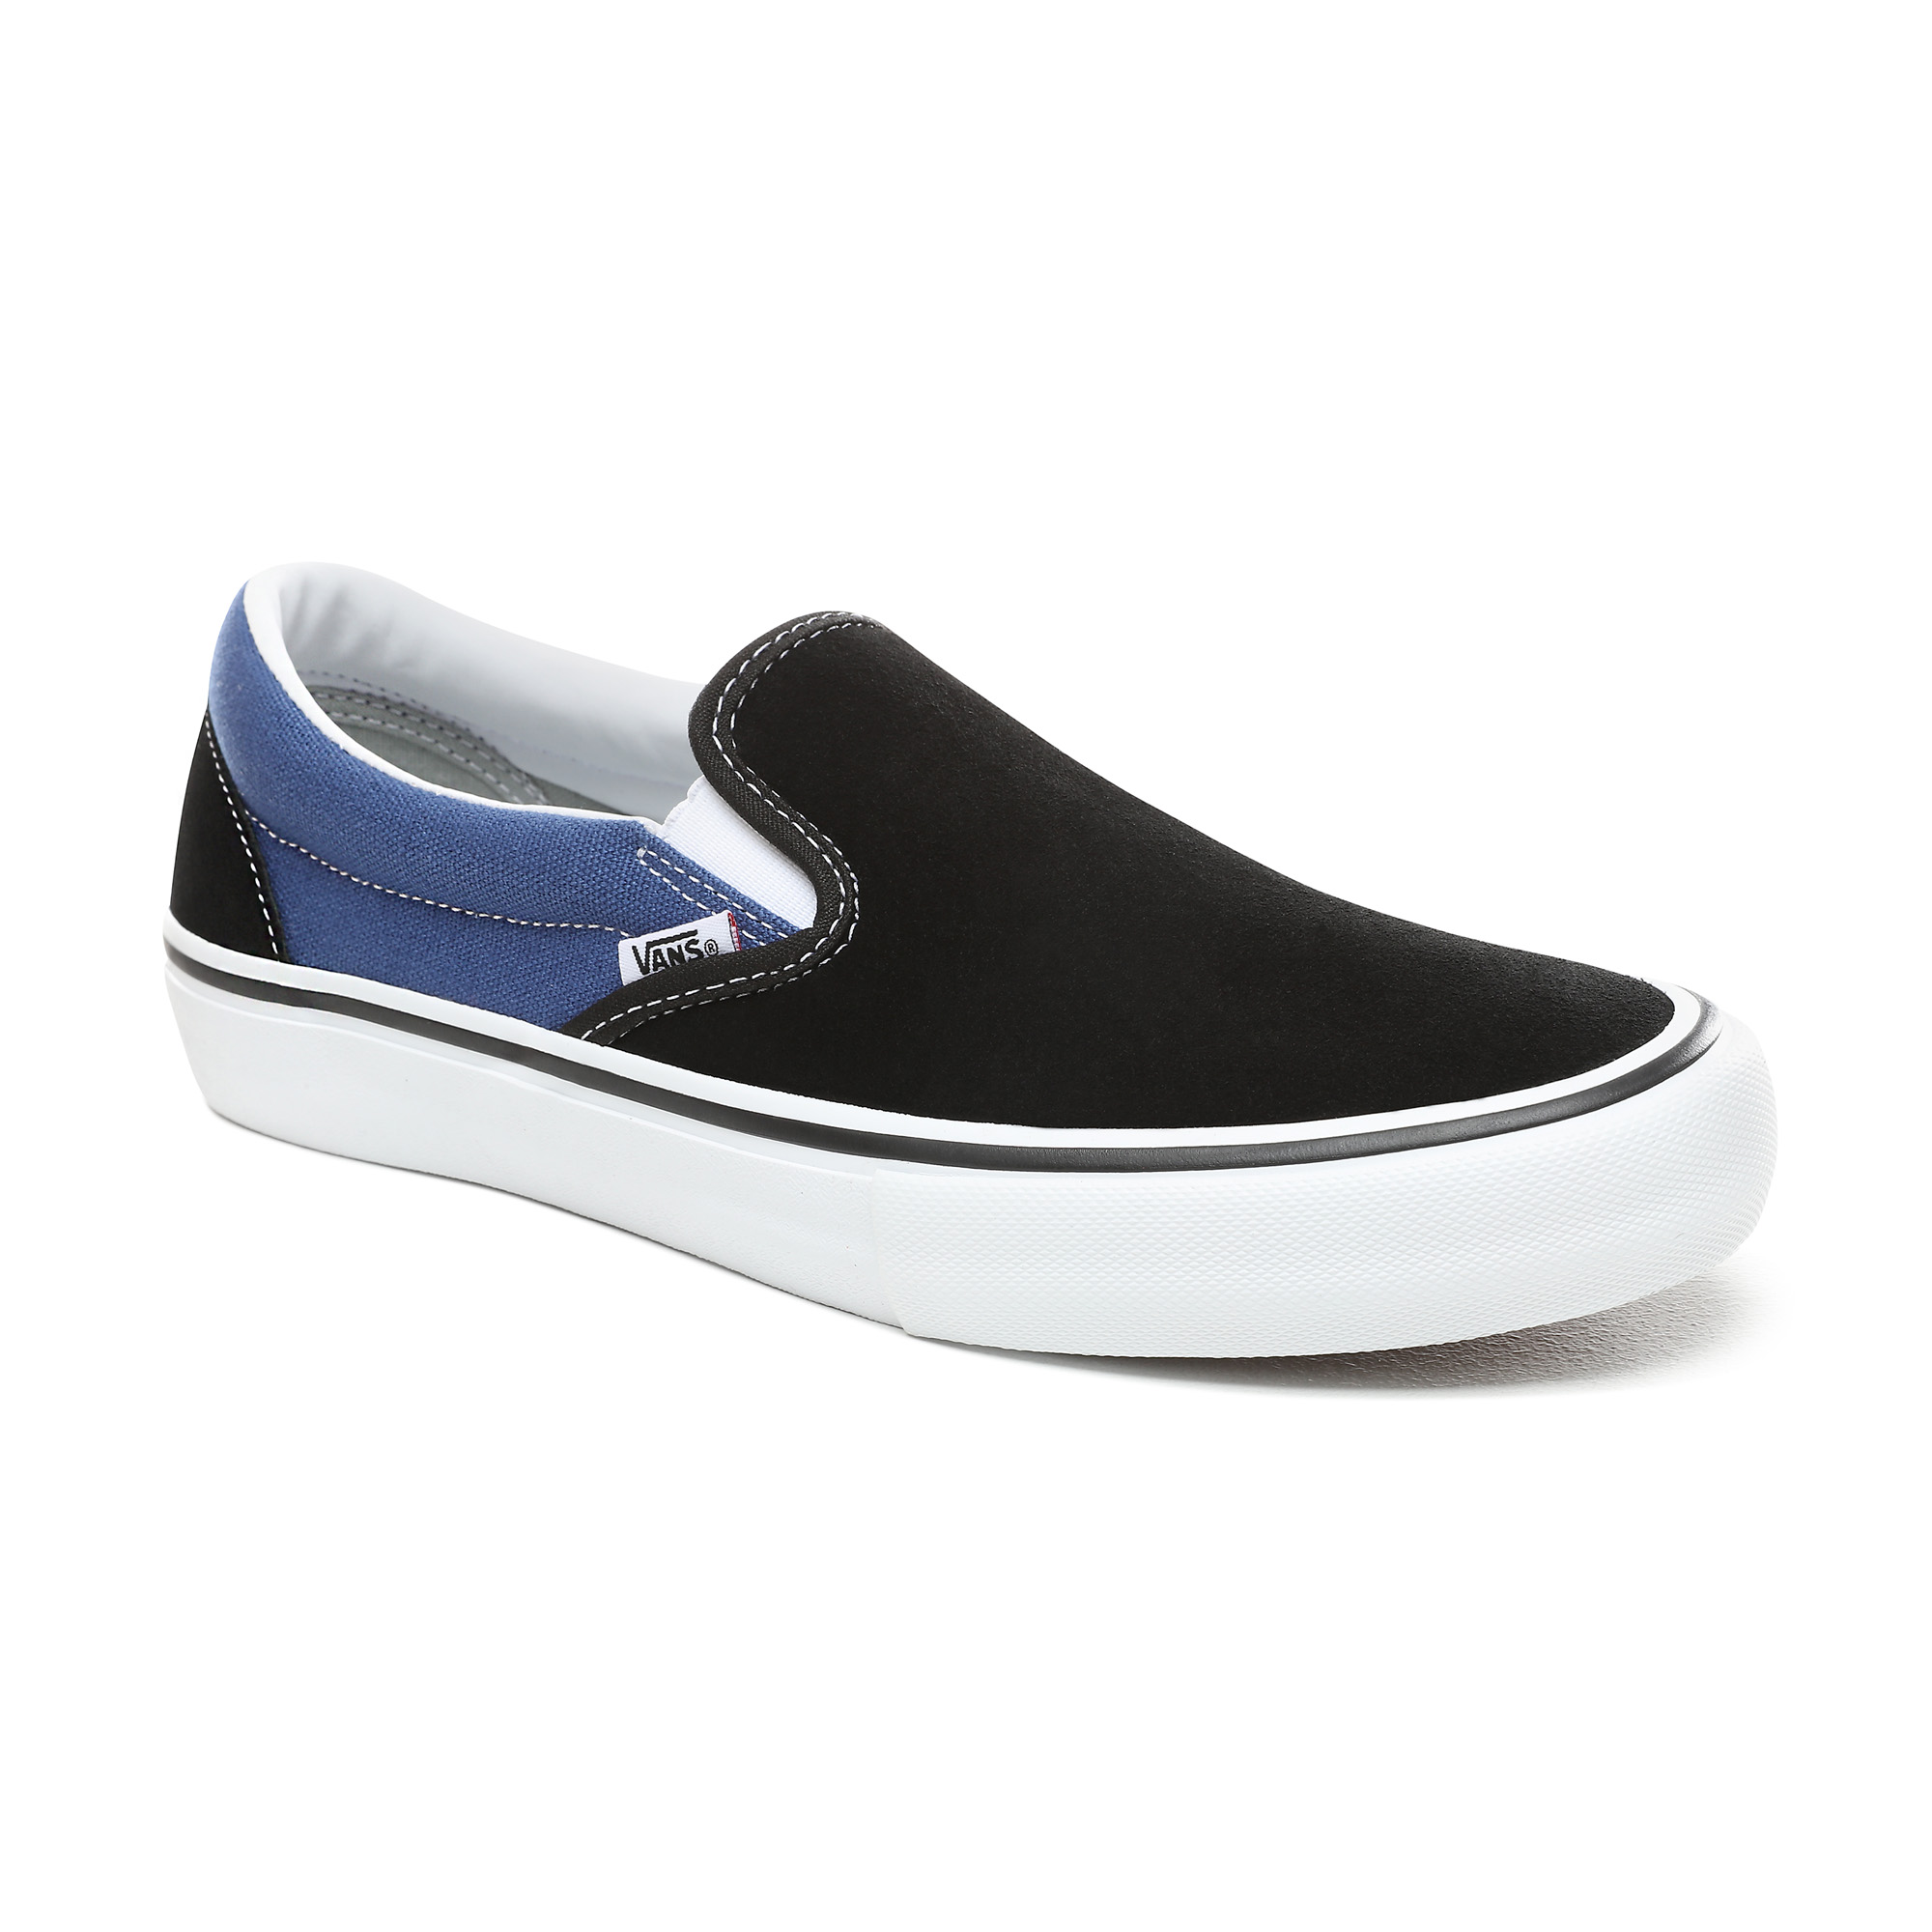 Полуботинки MN SLIP-ON PRO (ANTI HERO) Черный